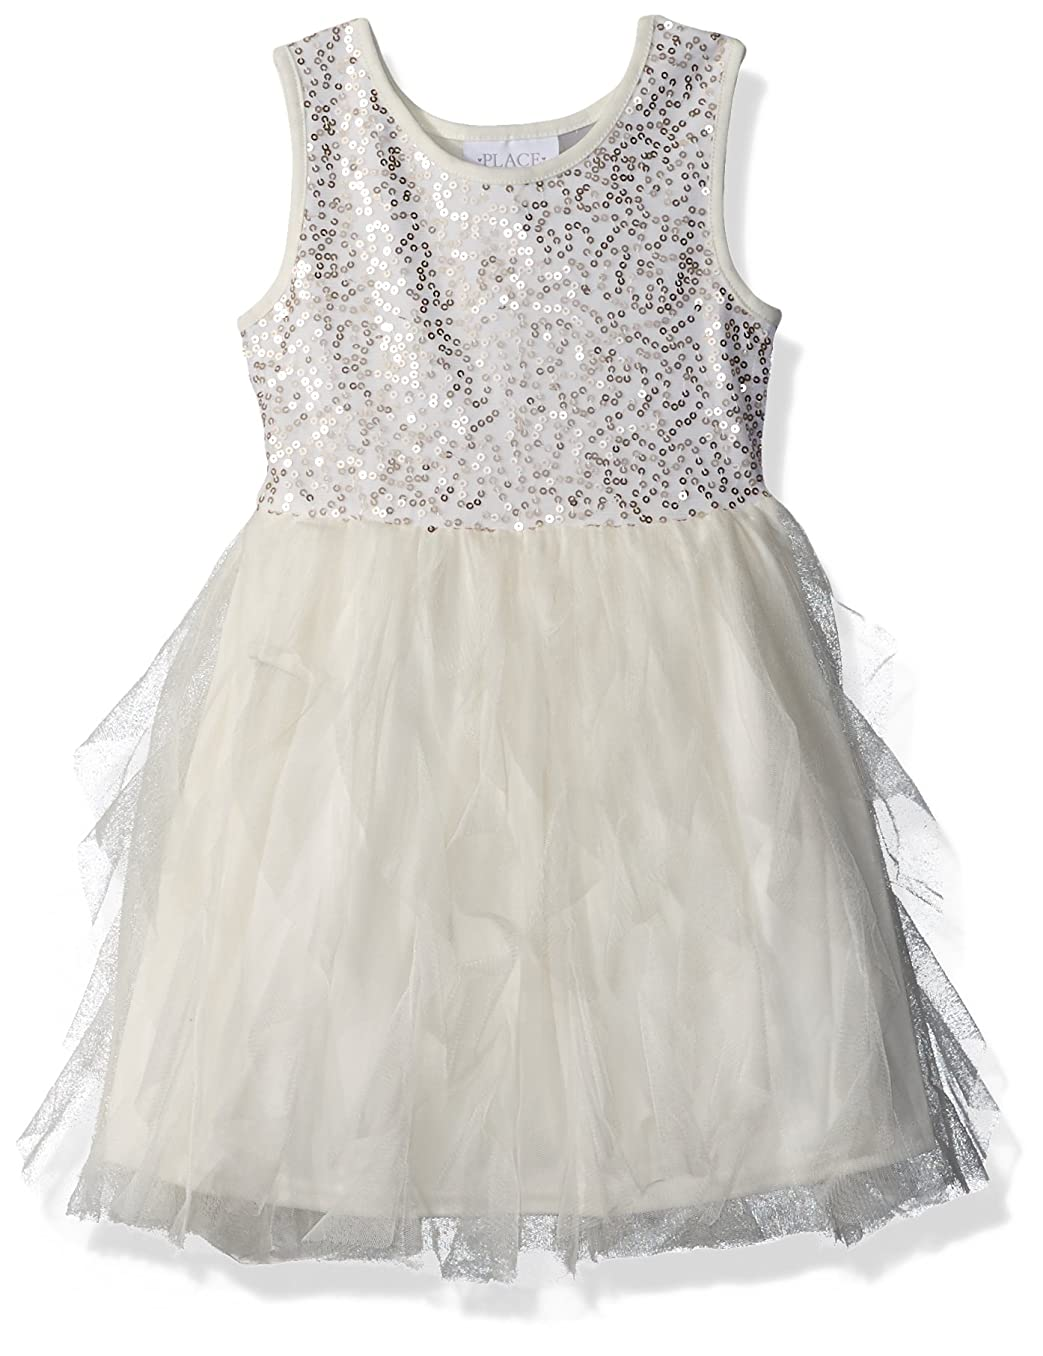 The Children's Place Big Girls' Sequin and Mesh Dress